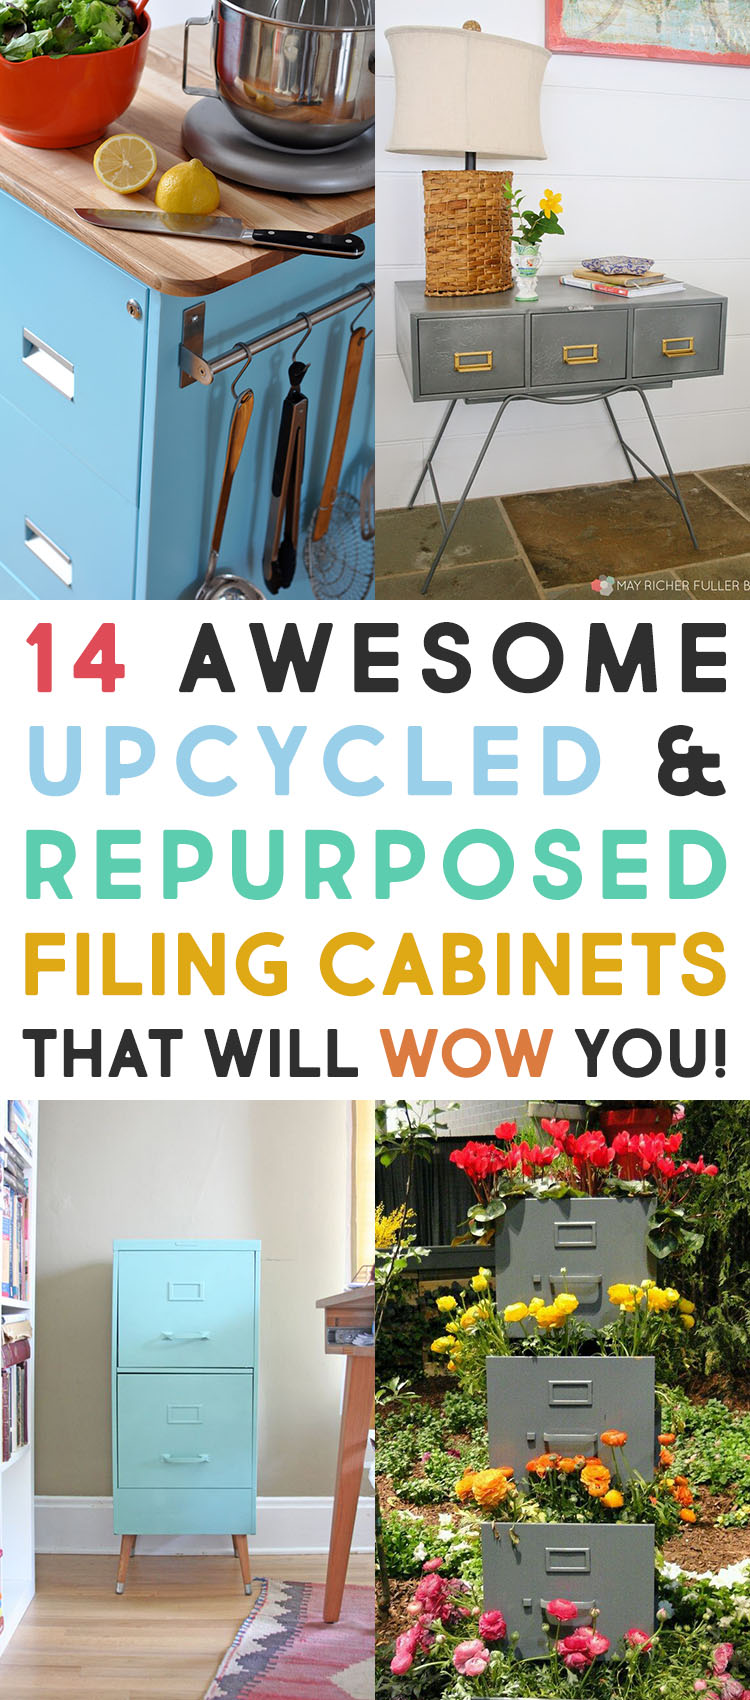 14 Awesome Upcycled and Repurposed Filing Cabinets that will WoW You!